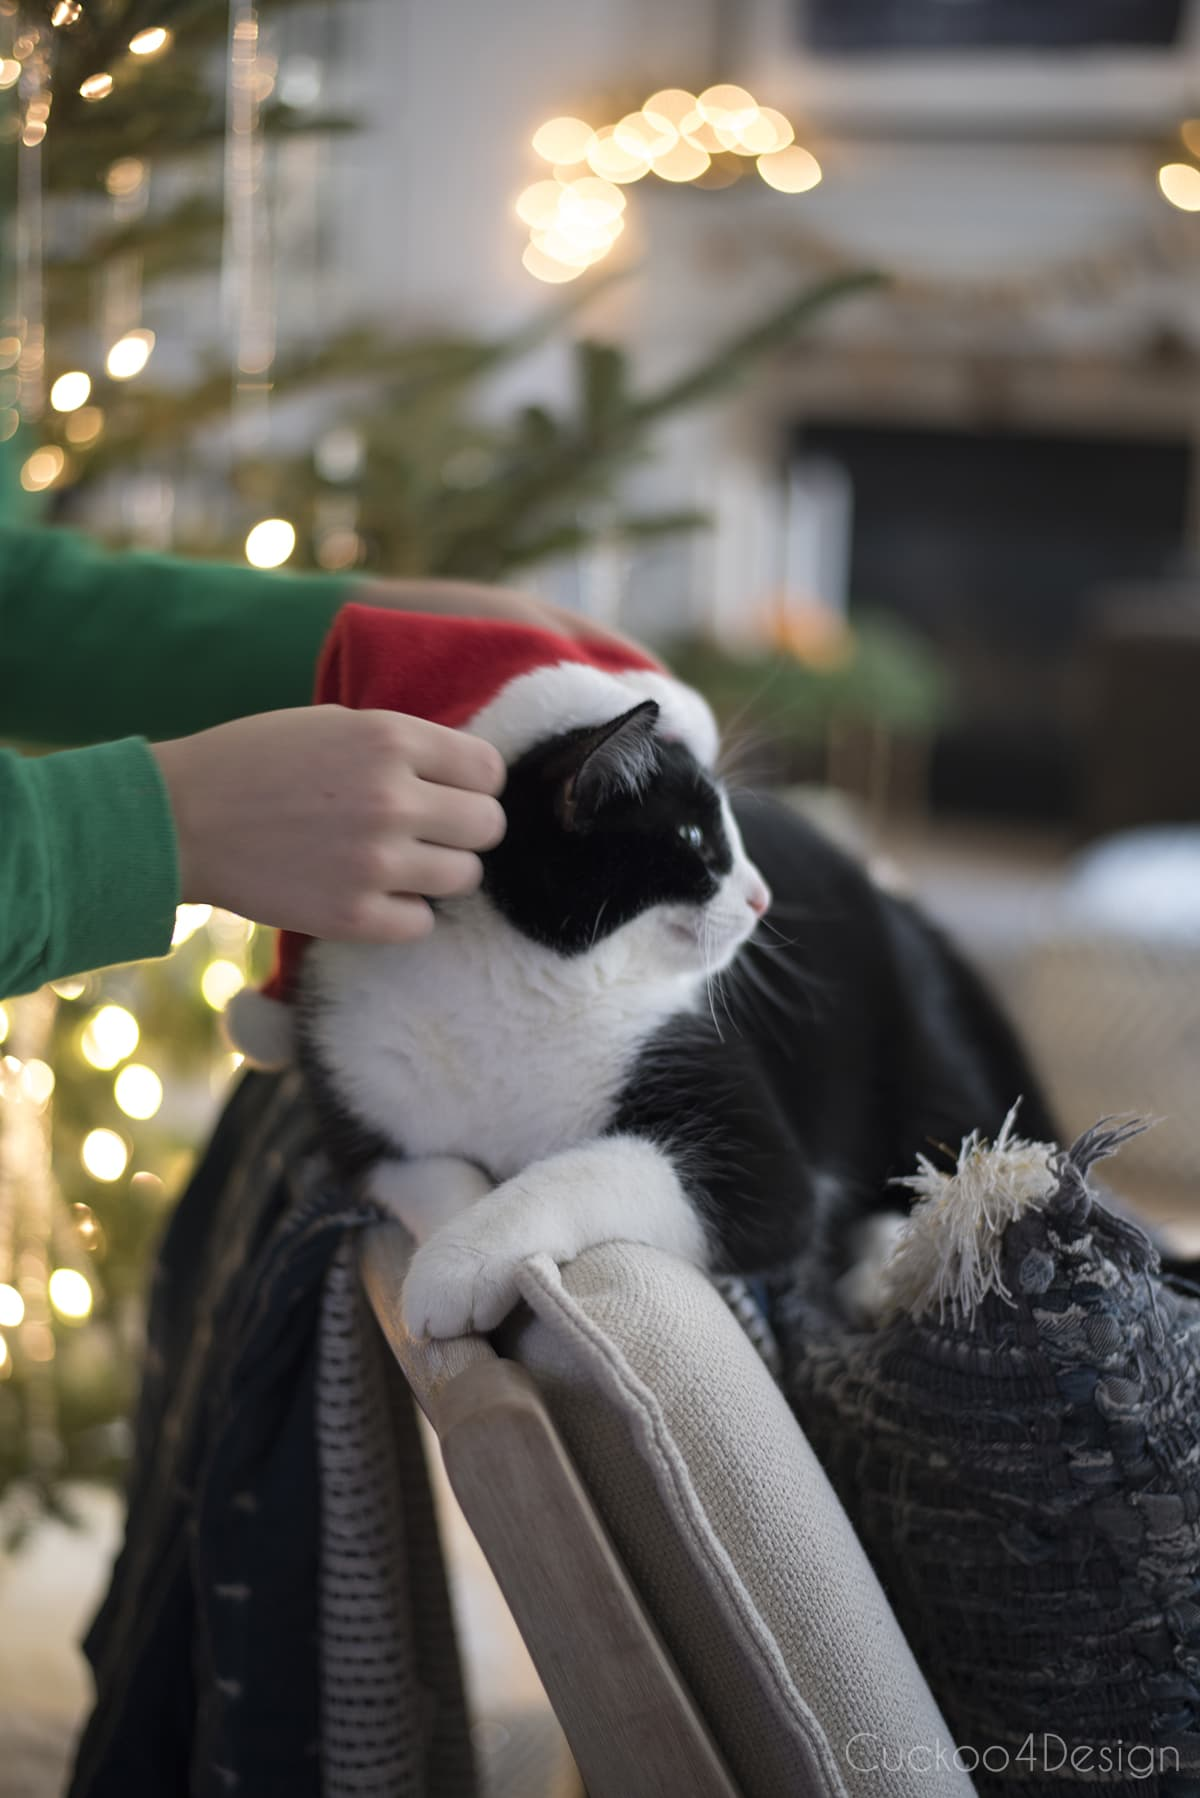 our tuxedo with Santa hat